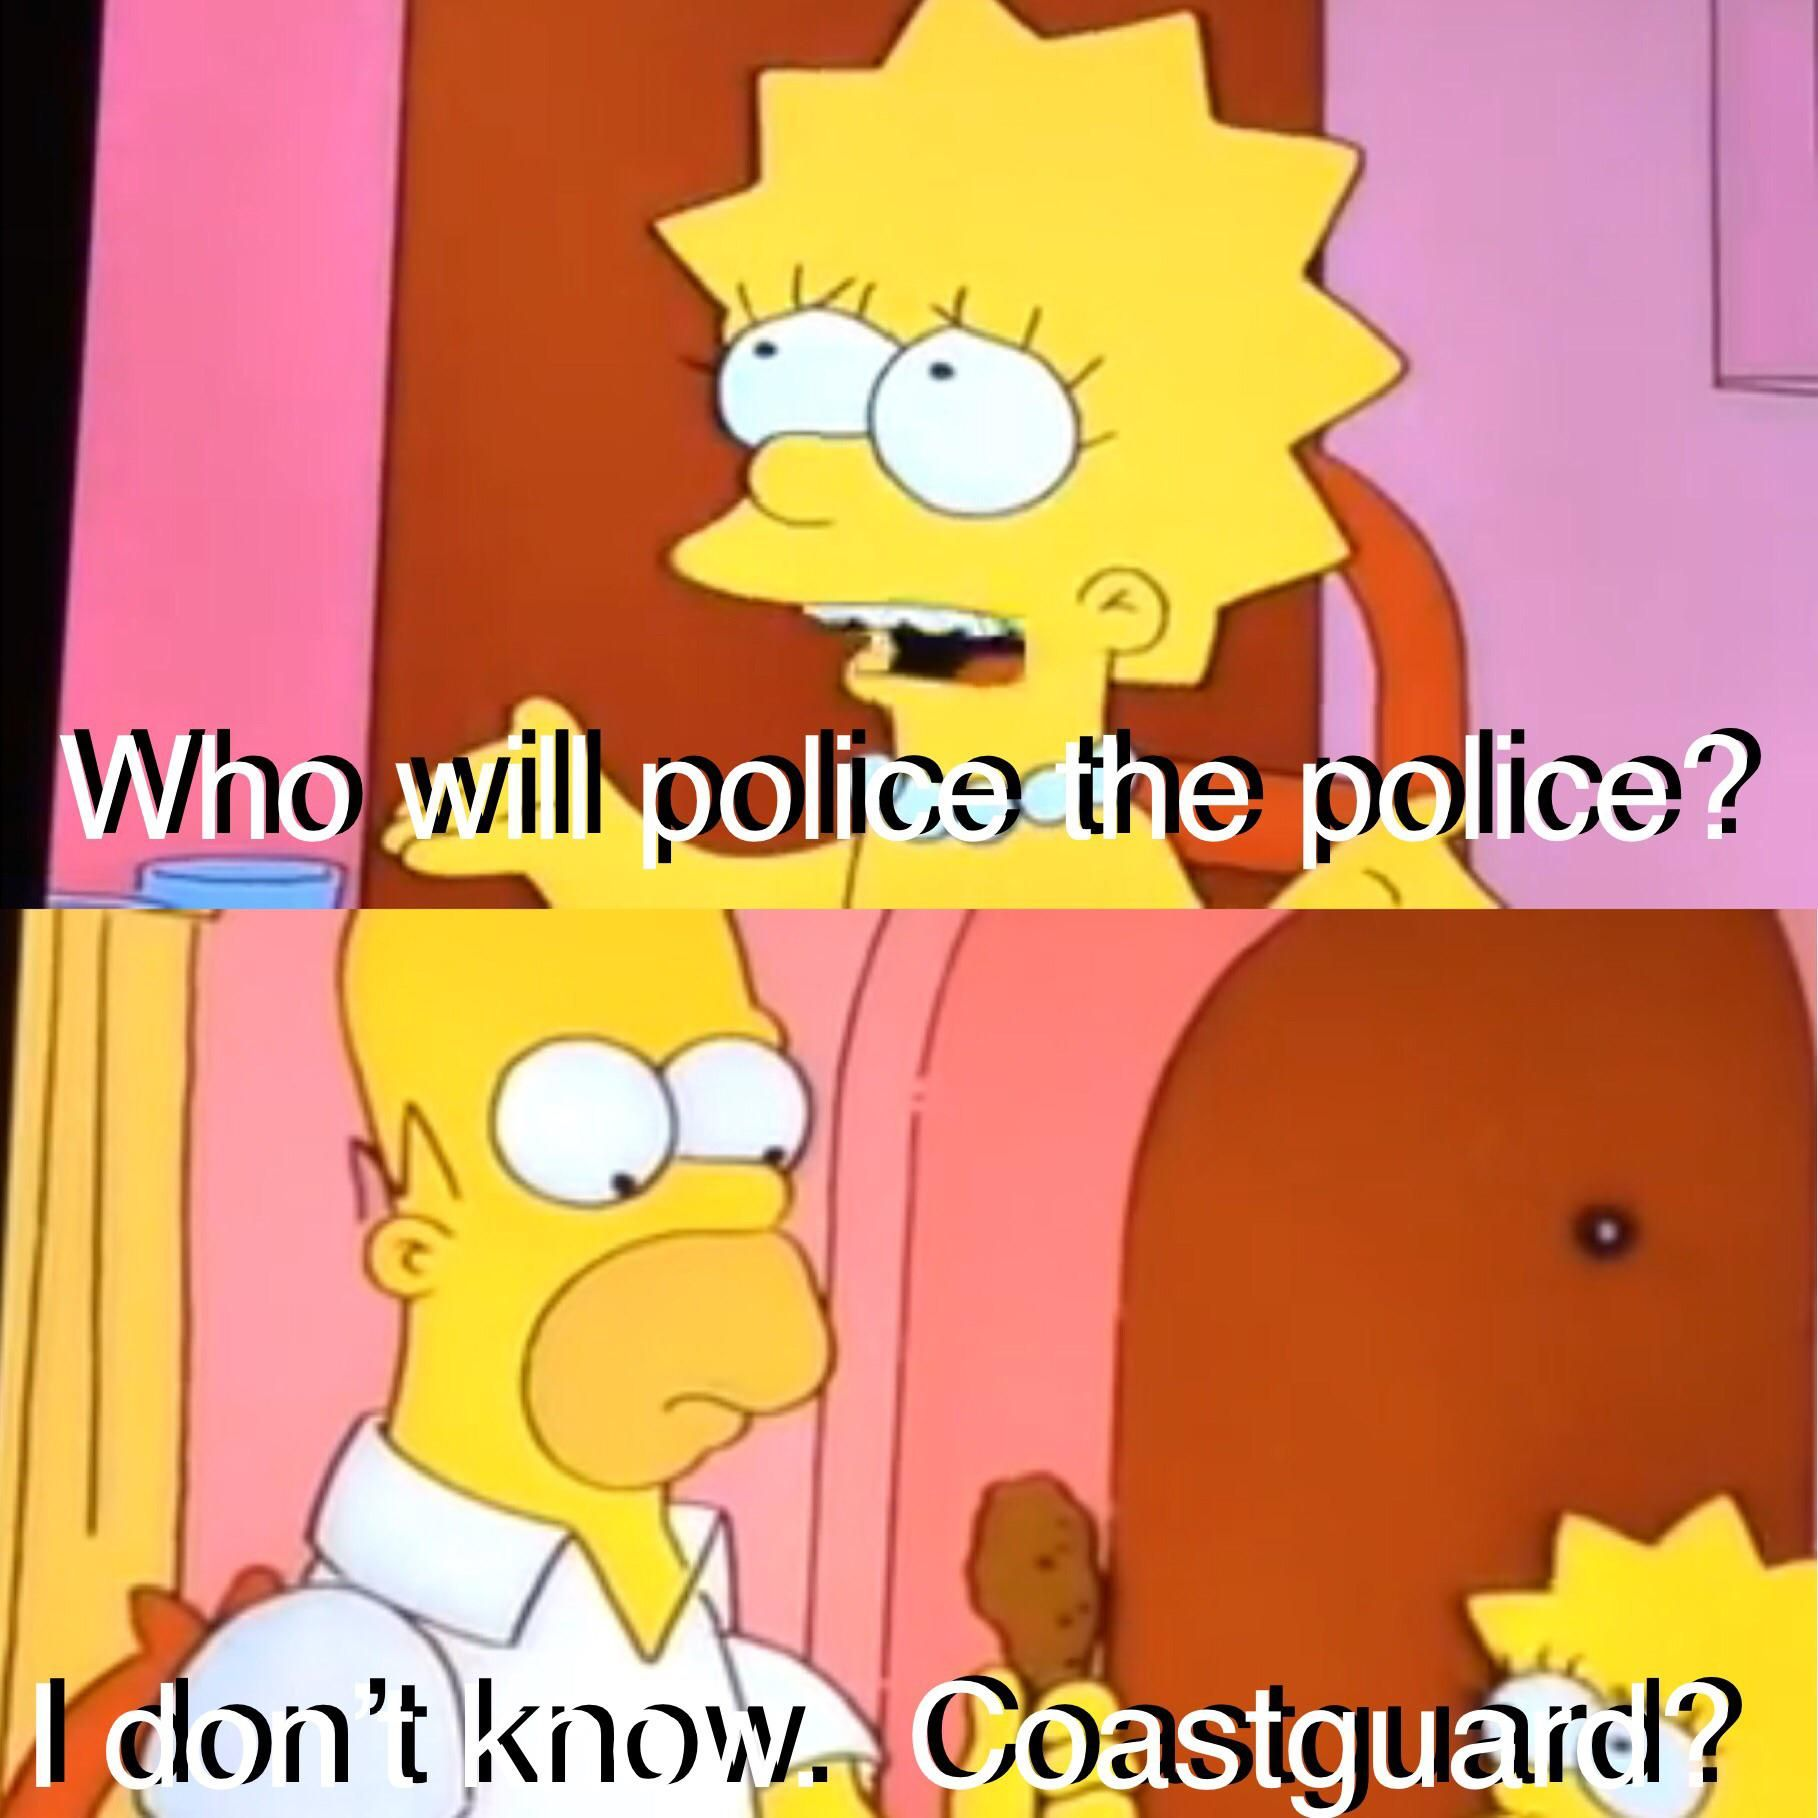 As always, Homer knows what to do in these troubled times.